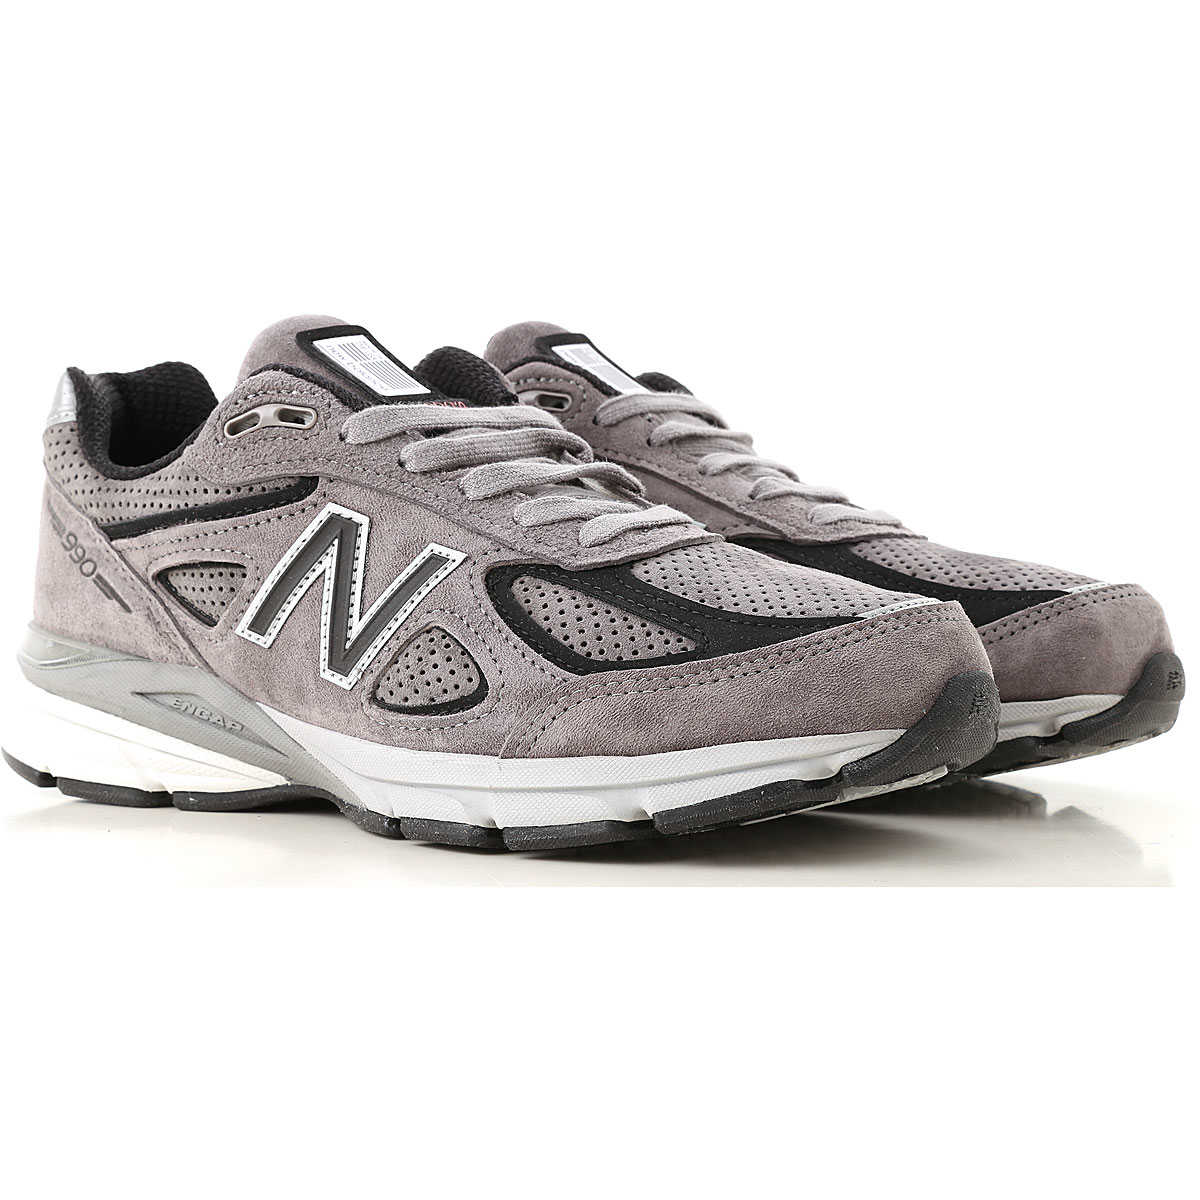 new balance sneakers mens sale - 65